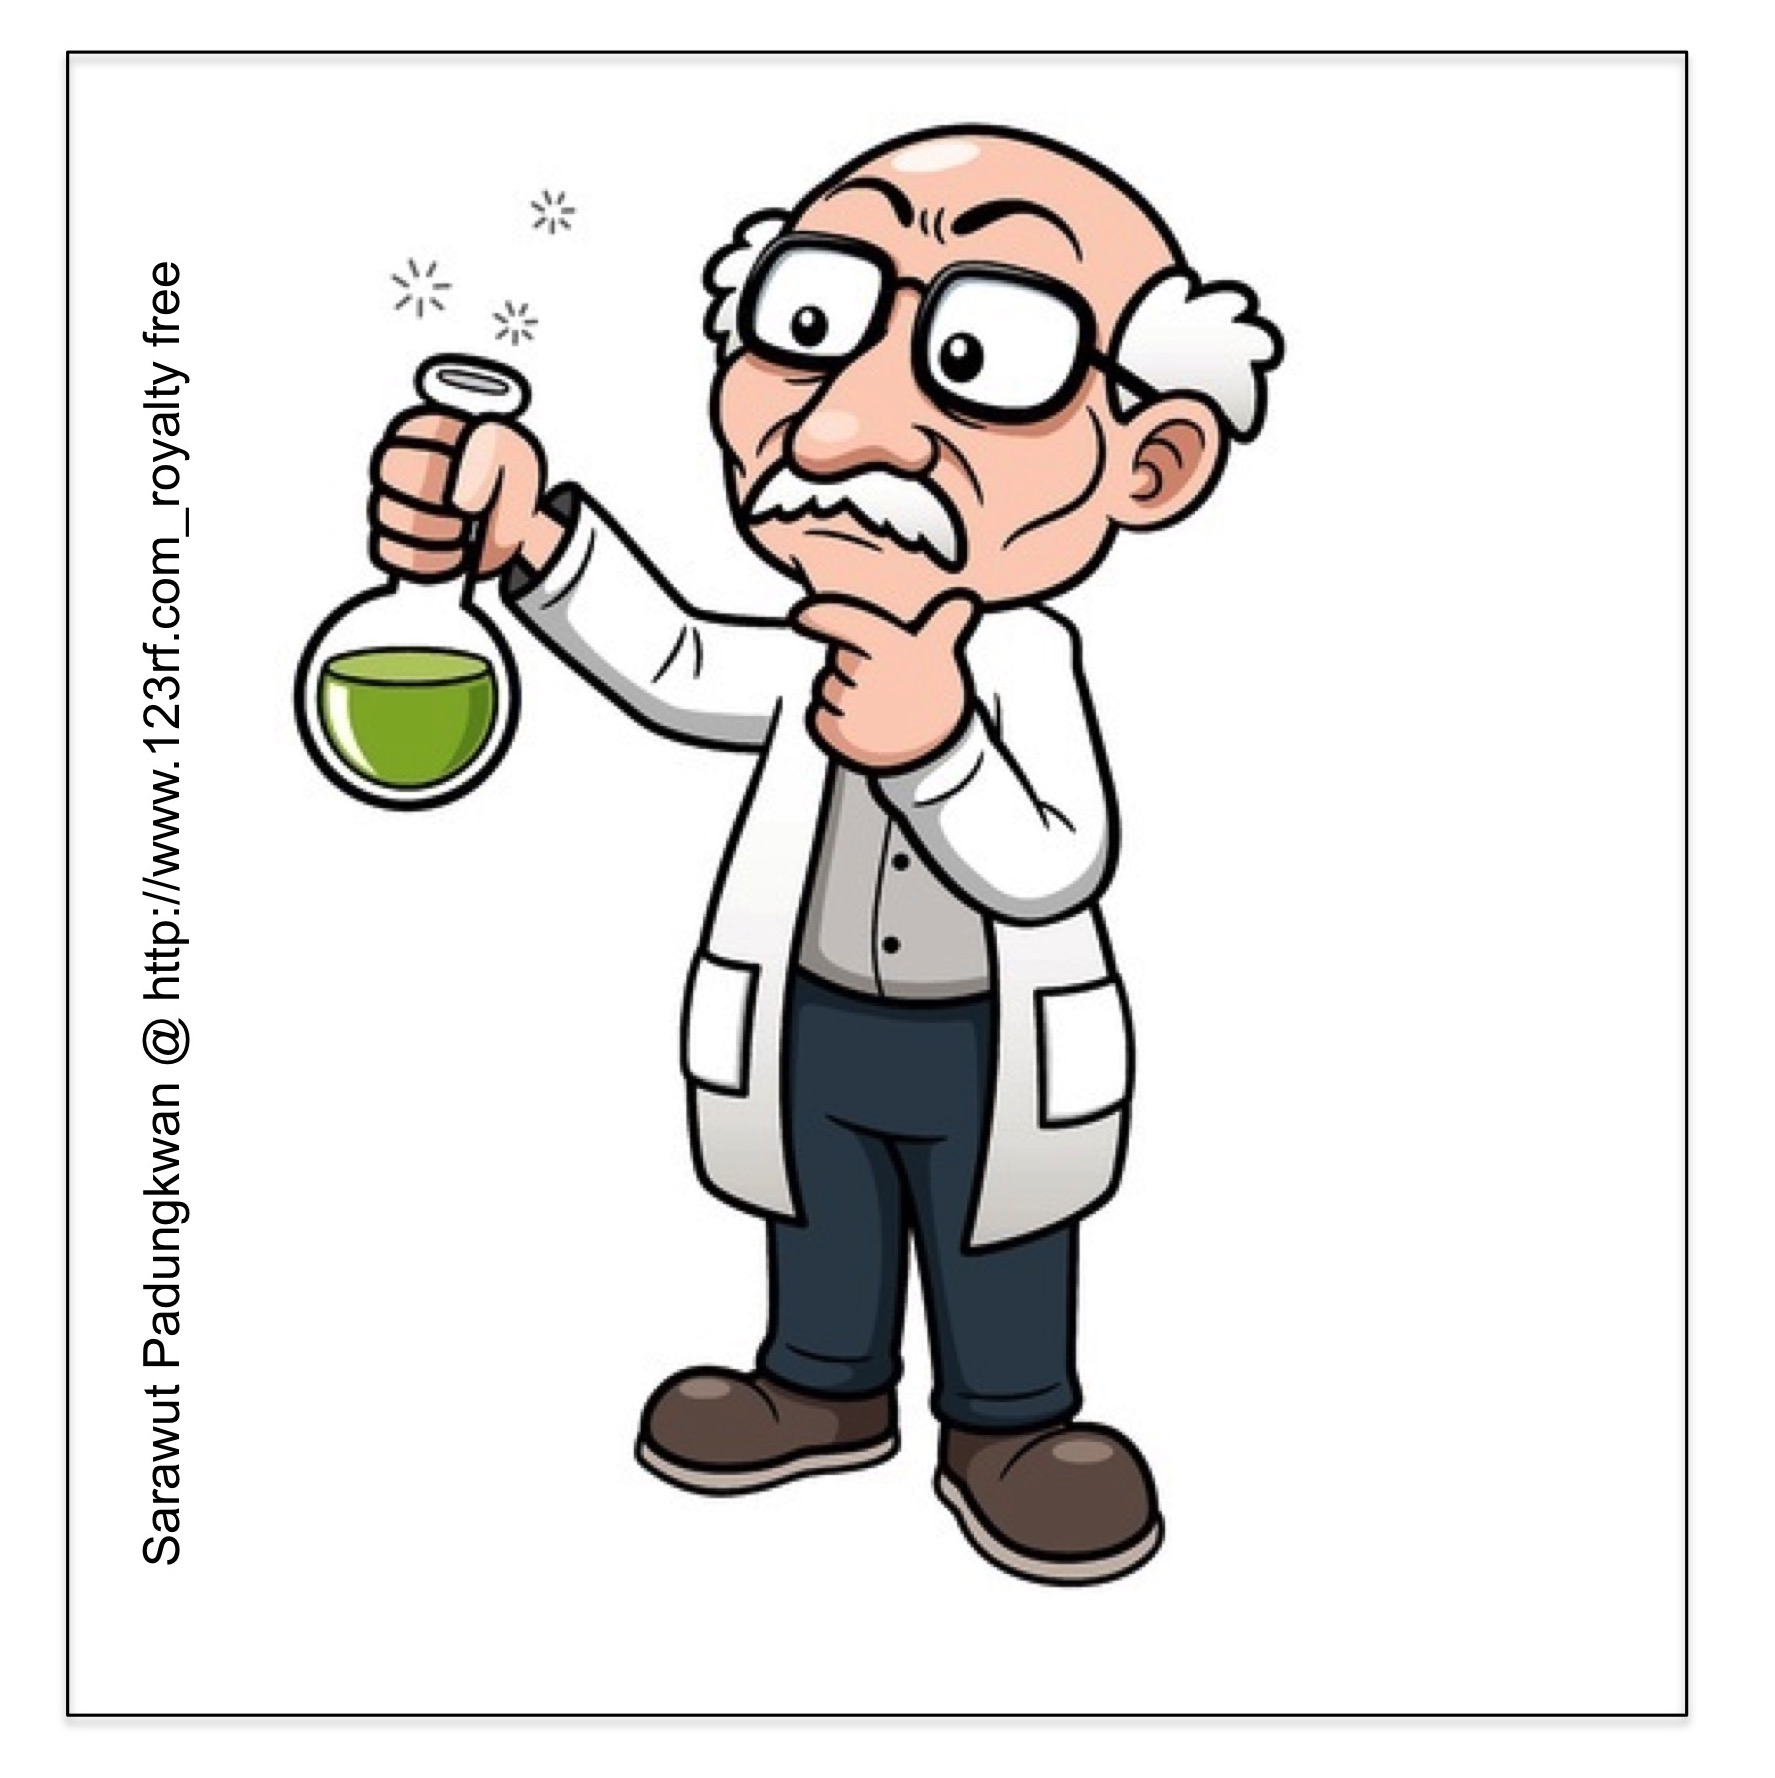 How To Draw A Scientists - ClipArt Best